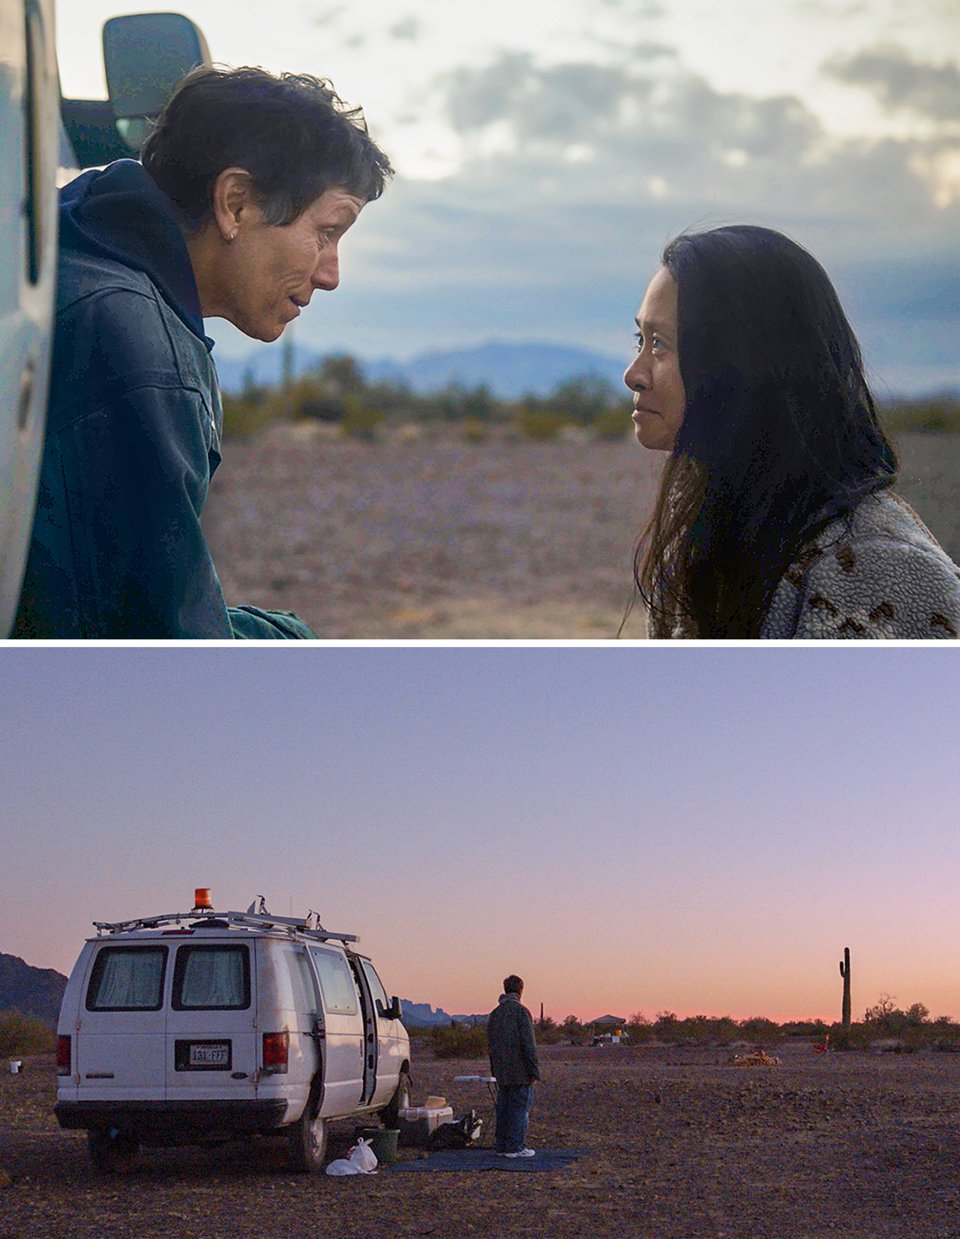 a woman leaning out of a van to talk to another woman and a woman standing by a van to look out over a desert landscape at sunset